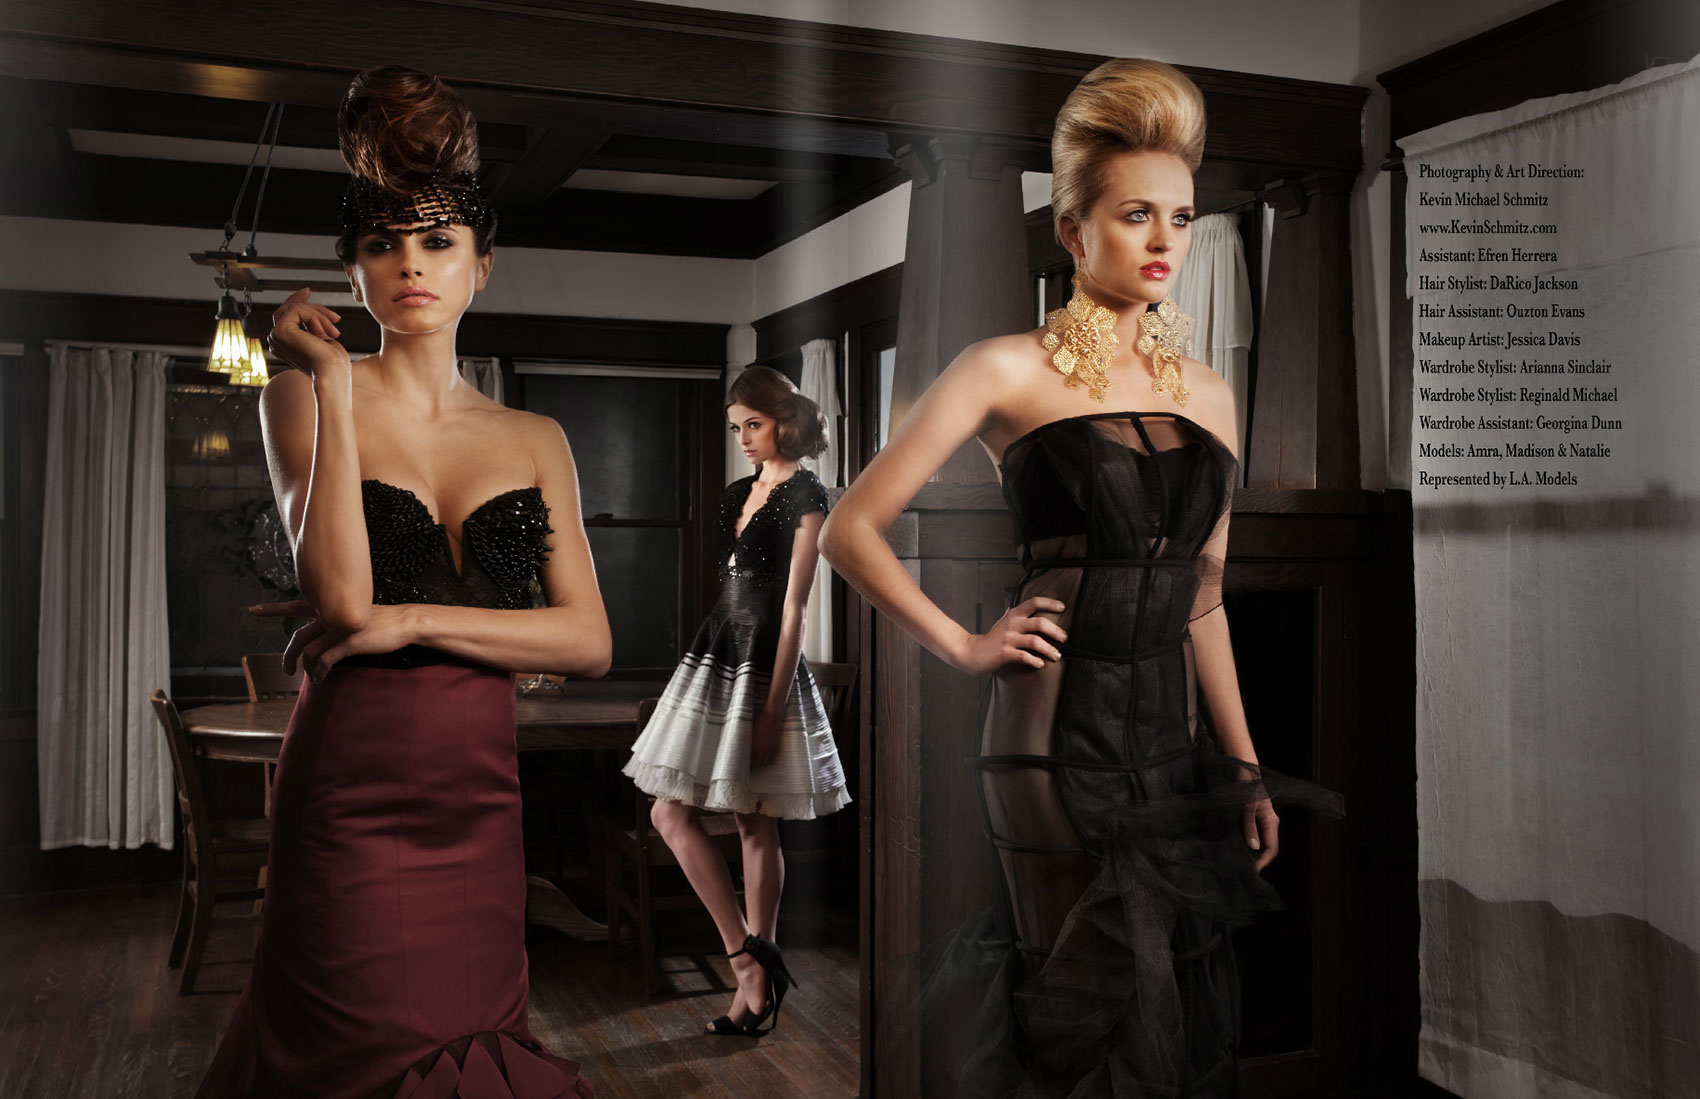 Photography-Fashion_Evening gowns-Kevin Schmitz